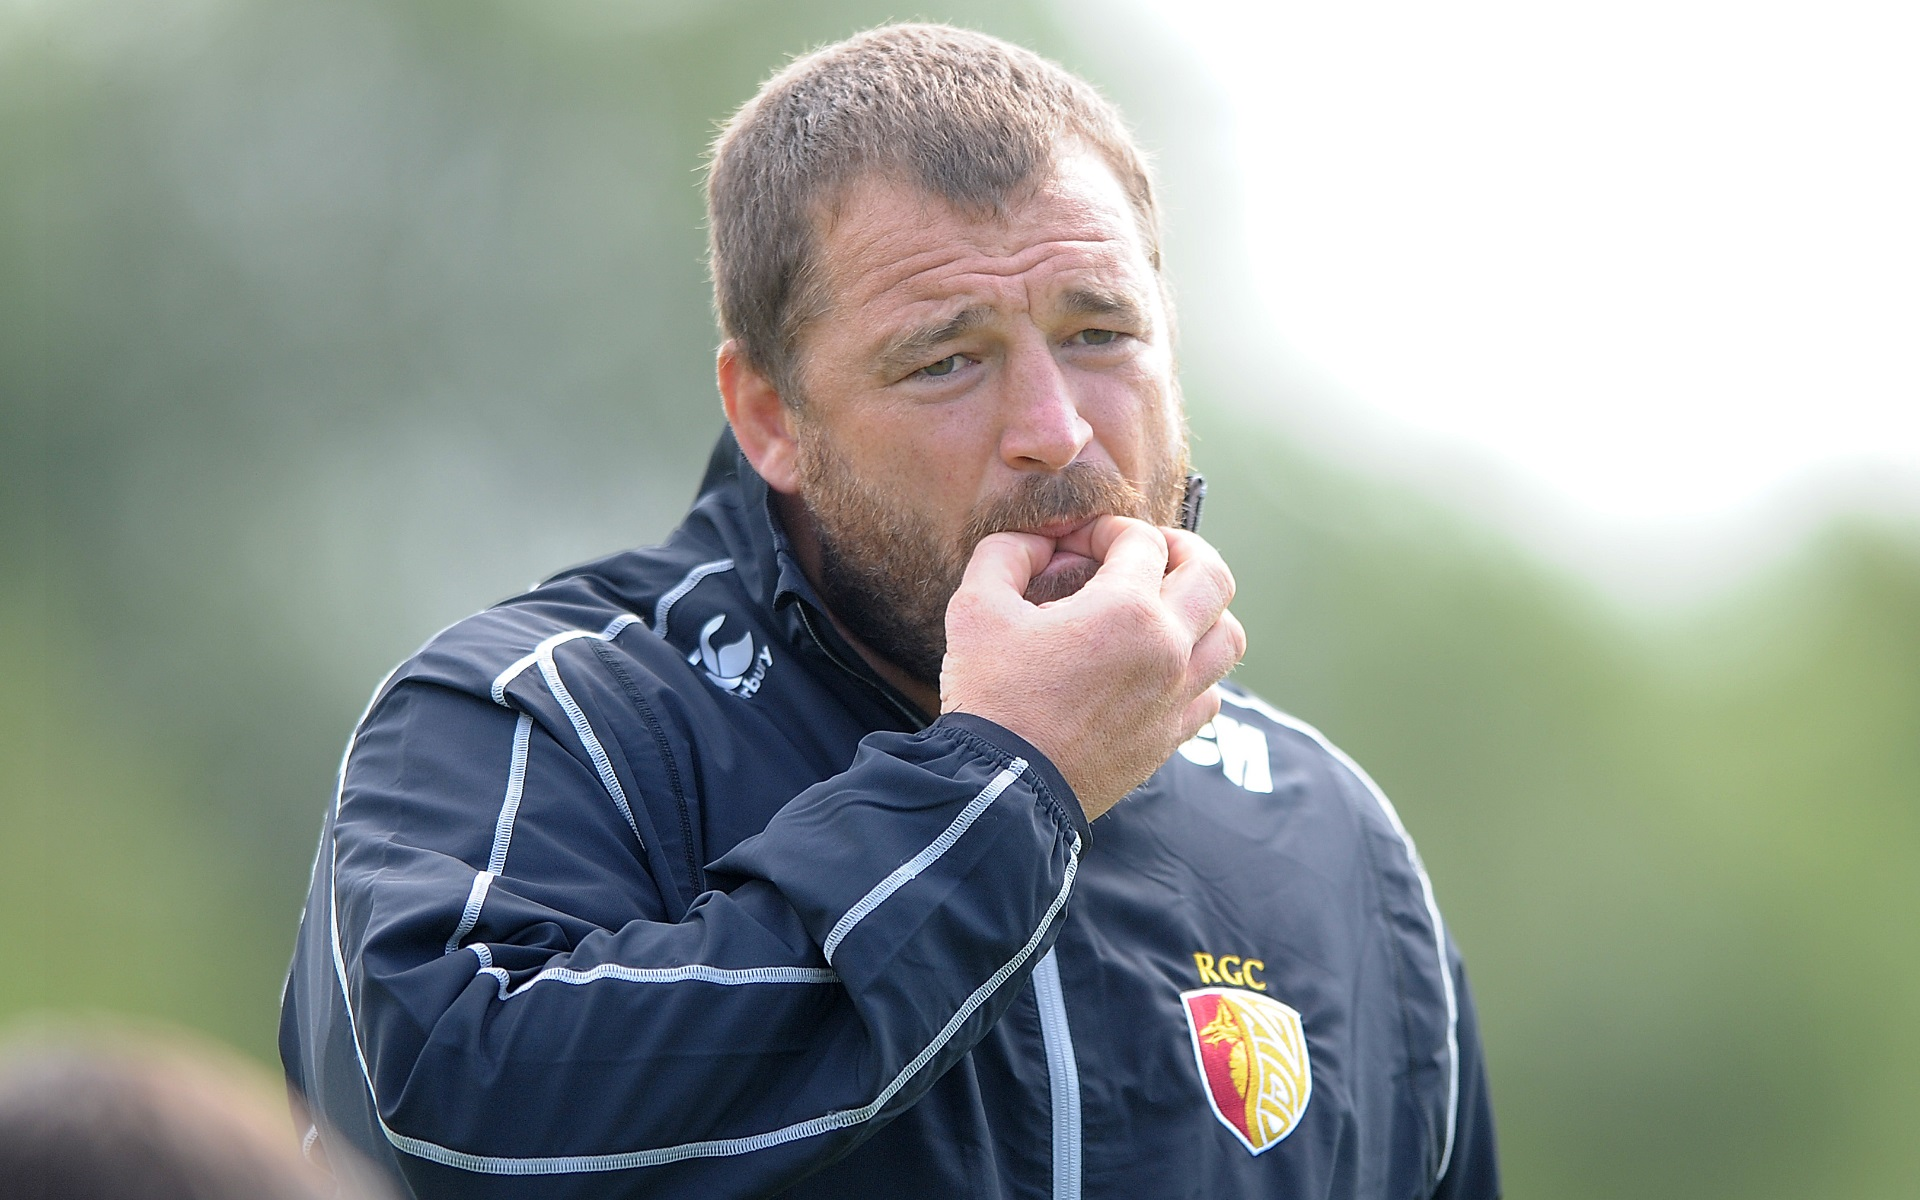 RGC hope to shock rivals